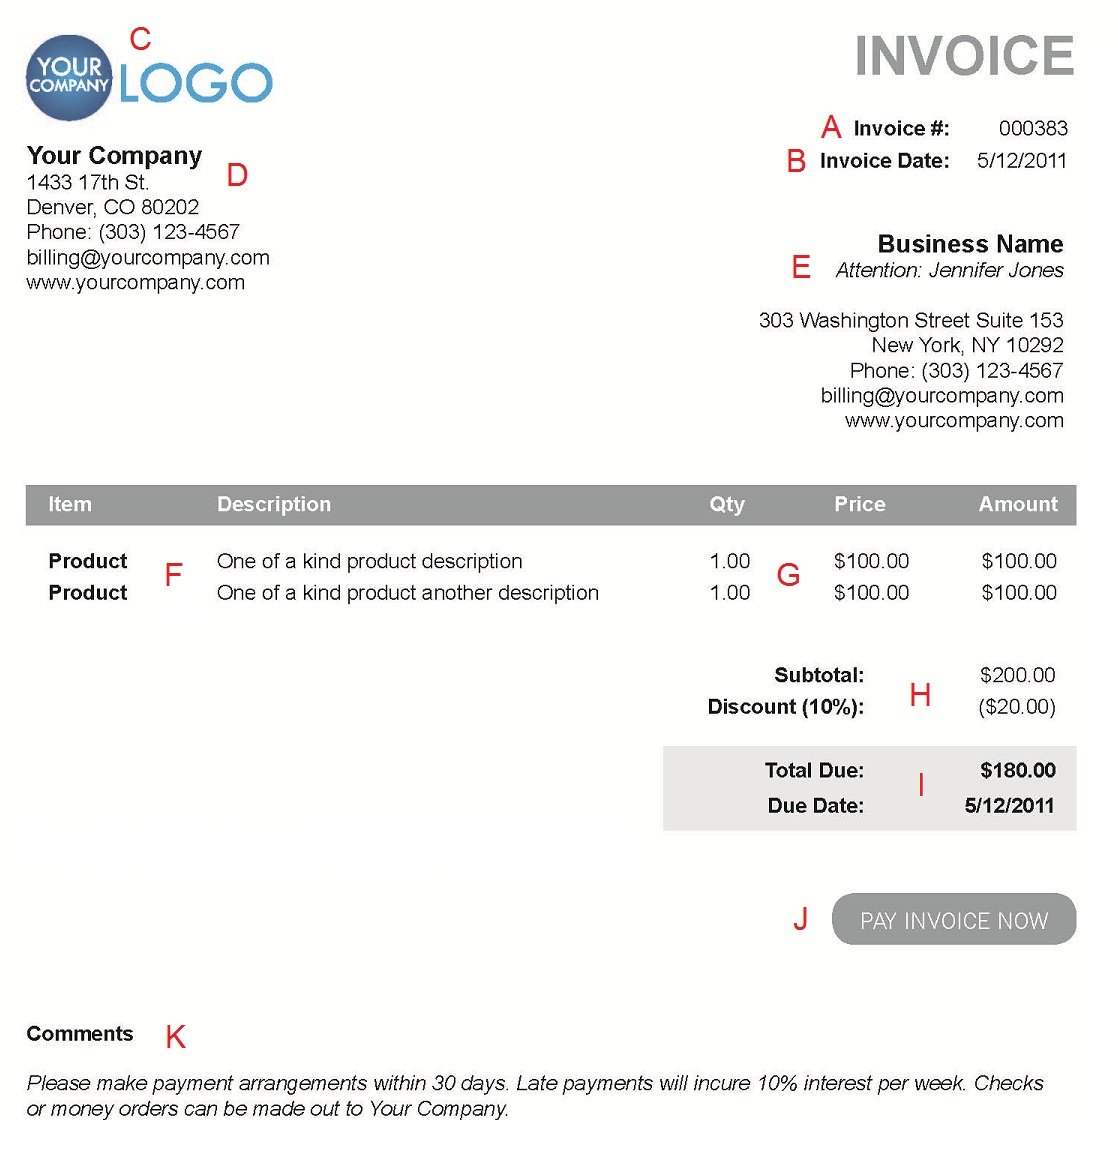 Carterusaus  Winsome The  Different Sections Of An Electronic Payment Invoice With Gorgeous A  With Cute When To Invoice A Client Also Invoice App For Ipad In Addition Template For An Invoice And Unpaid Invoice As Well As Invoice Accounting Additionally Requirements Of A Vat Invoice From Paysimplecom With Carterusaus  Gorgeous The  Different Sections Of An Electronic Payment Invoice With Cute A  And Winsome When To Invoice A Client Also Invoice App For Ipad In Addition Template For An Invoice From Paysimplecom